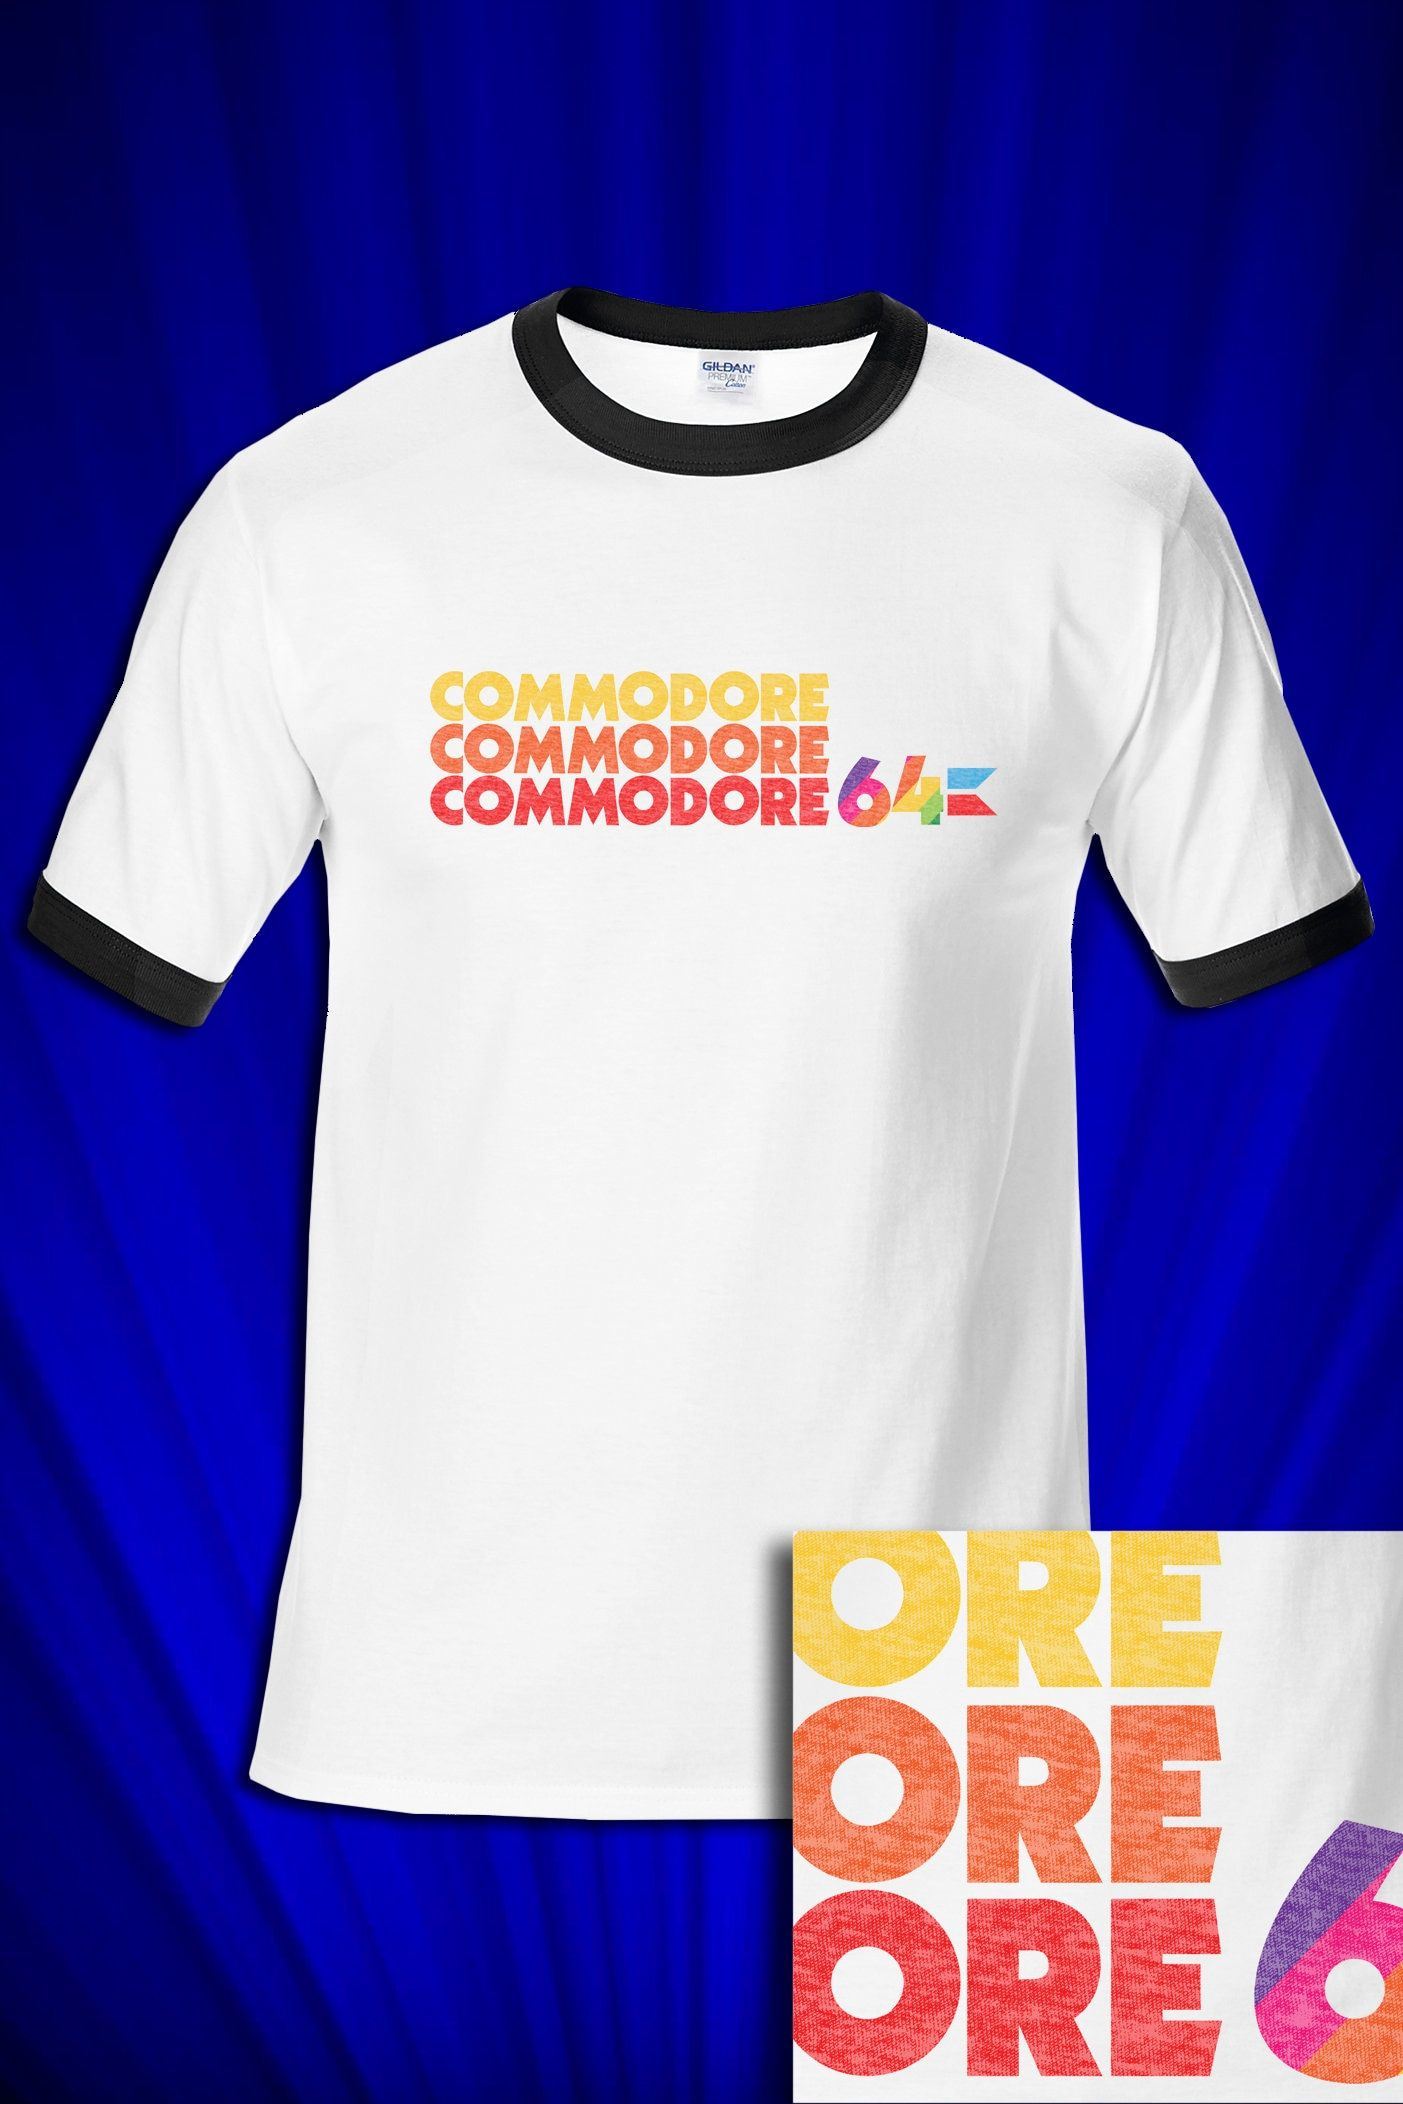 """""""Welcome to TIME WARP MUSIC T's. Amazing quality graphic shirts! Commodore 64 RINGER (replica of the classic 80s tee) PLEASE PLEASE, understand all brands fit differently, BE SURE TO MEASURE YOUR FAVORITE TEE YOU CURRENTLY OWN & COMPARE to OUR SIZE CHART ABOVE to get the BEST FIT FOR YOU. If you fail to do this and choose the wrong size, you may exchange as long as it's not washed or worn. It's up to the BUYER to cover shipping BACK TO US and then AGAIN BACK TO YOU. FREE SHIPPING DOES NOT AP"""